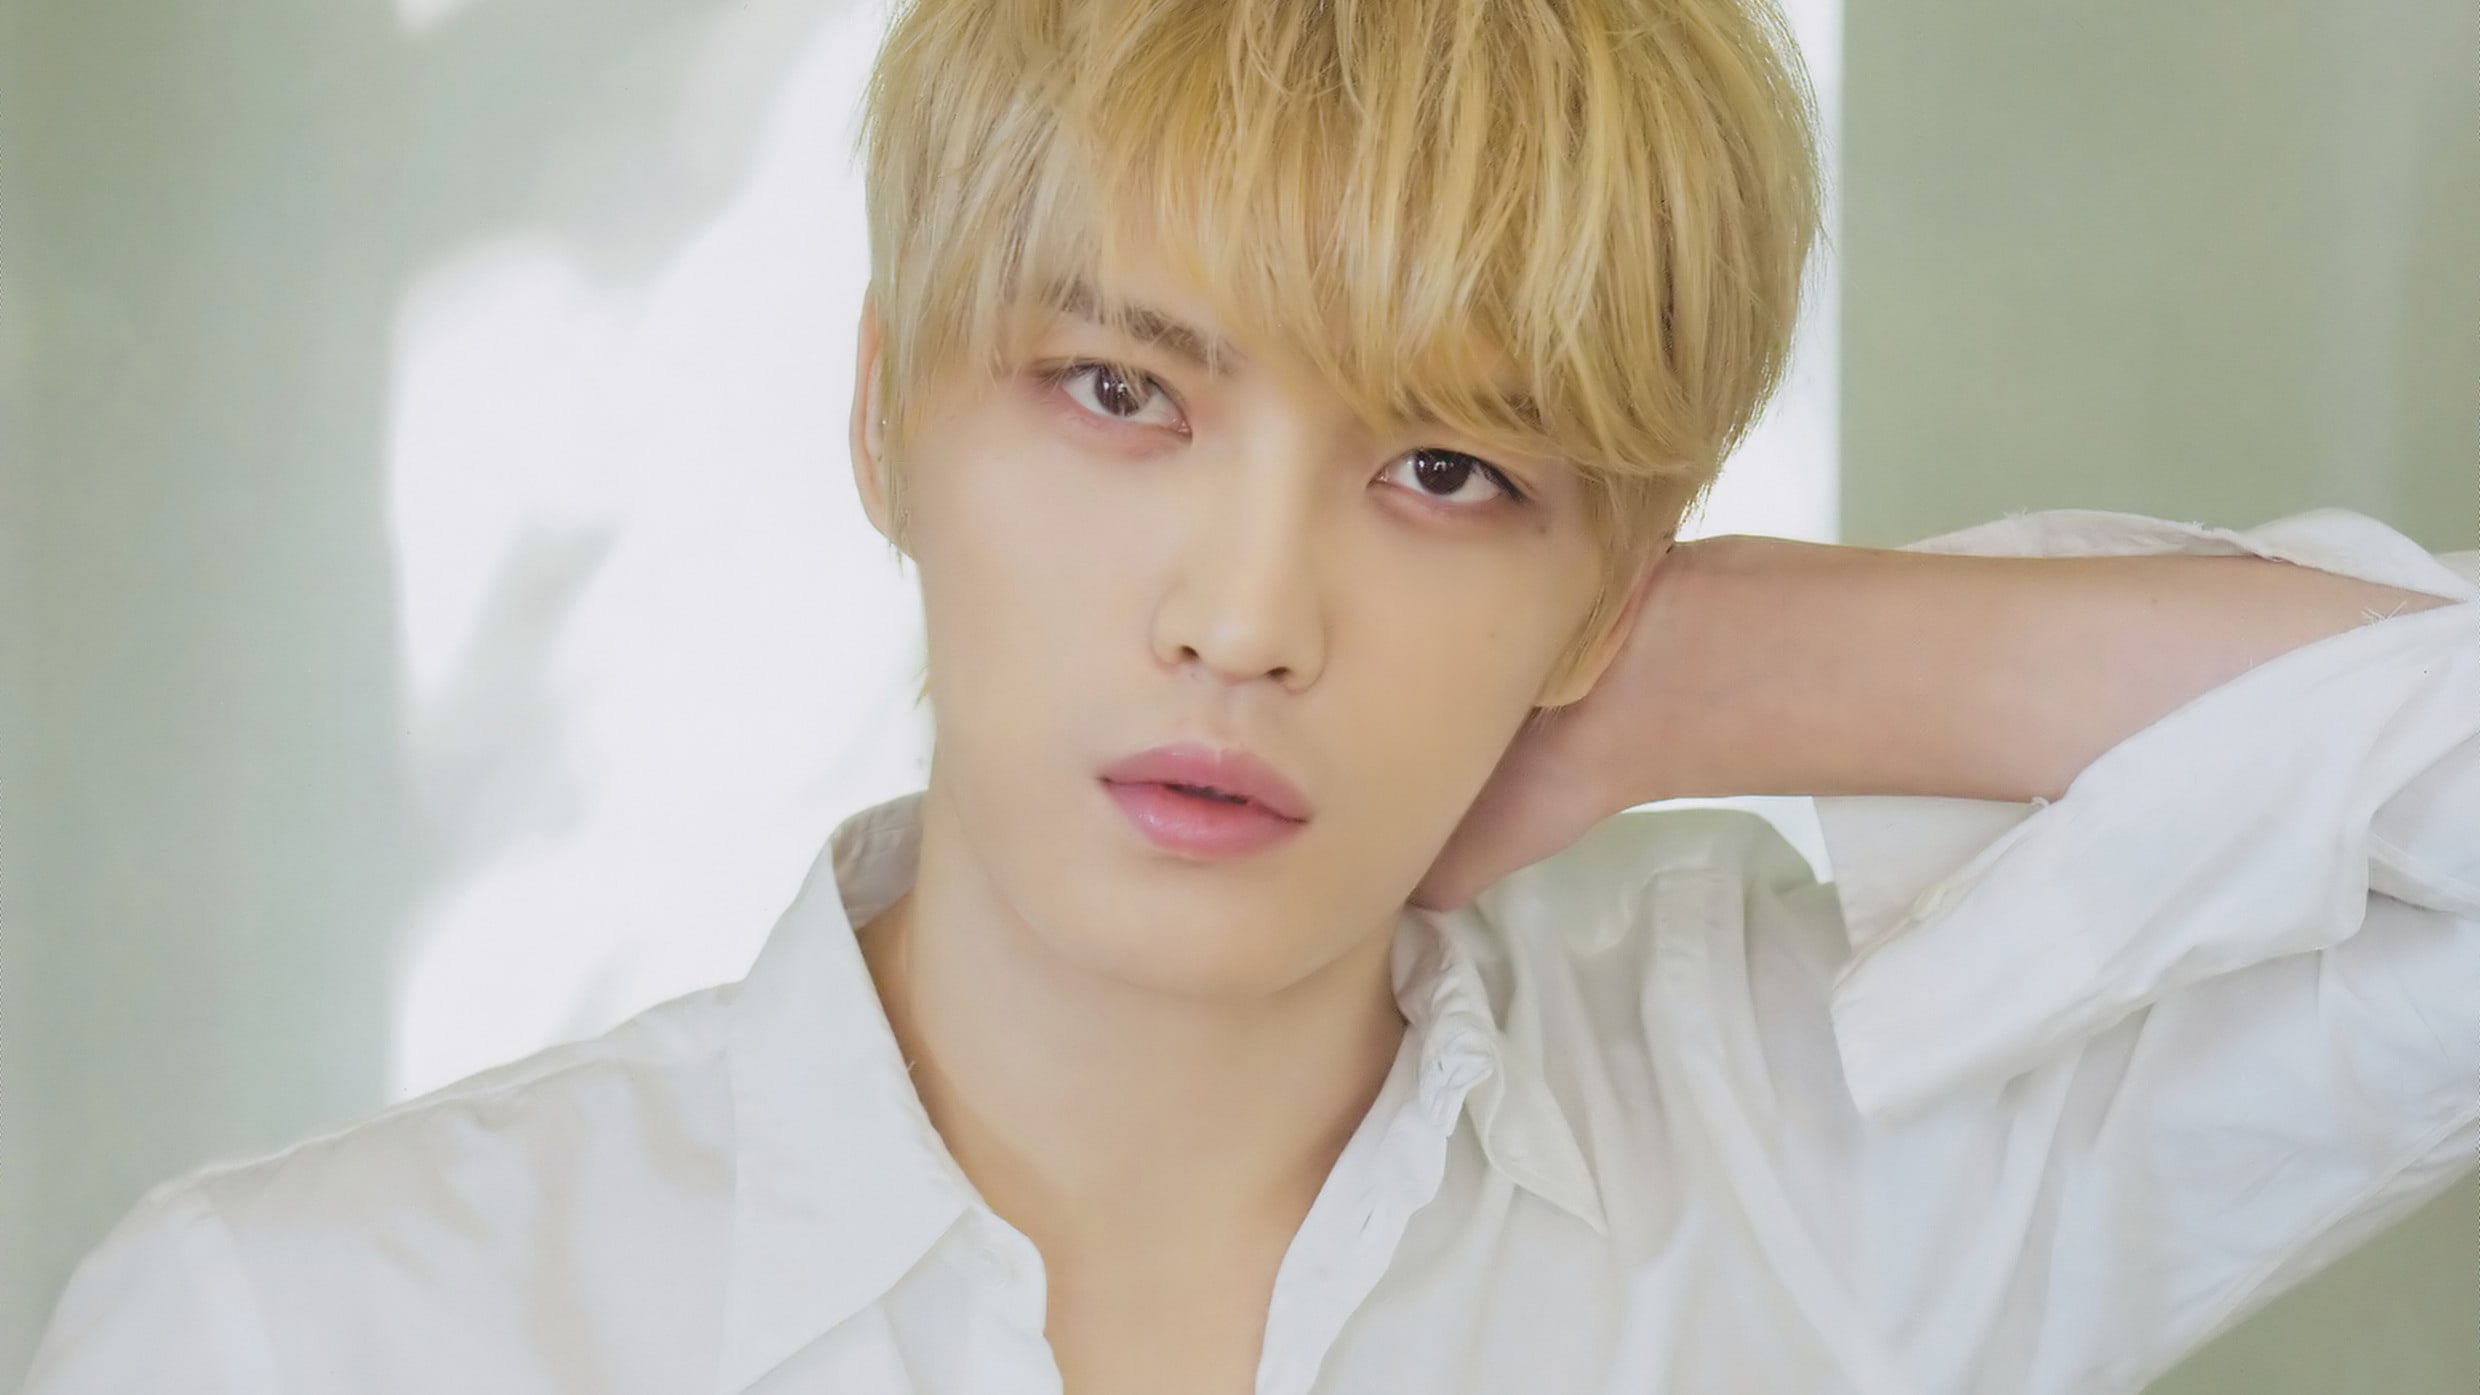 JYJs Kim Jaejoong Shows Off A New Look For His Upcoming Time-Slip Comedy Drama Manhole